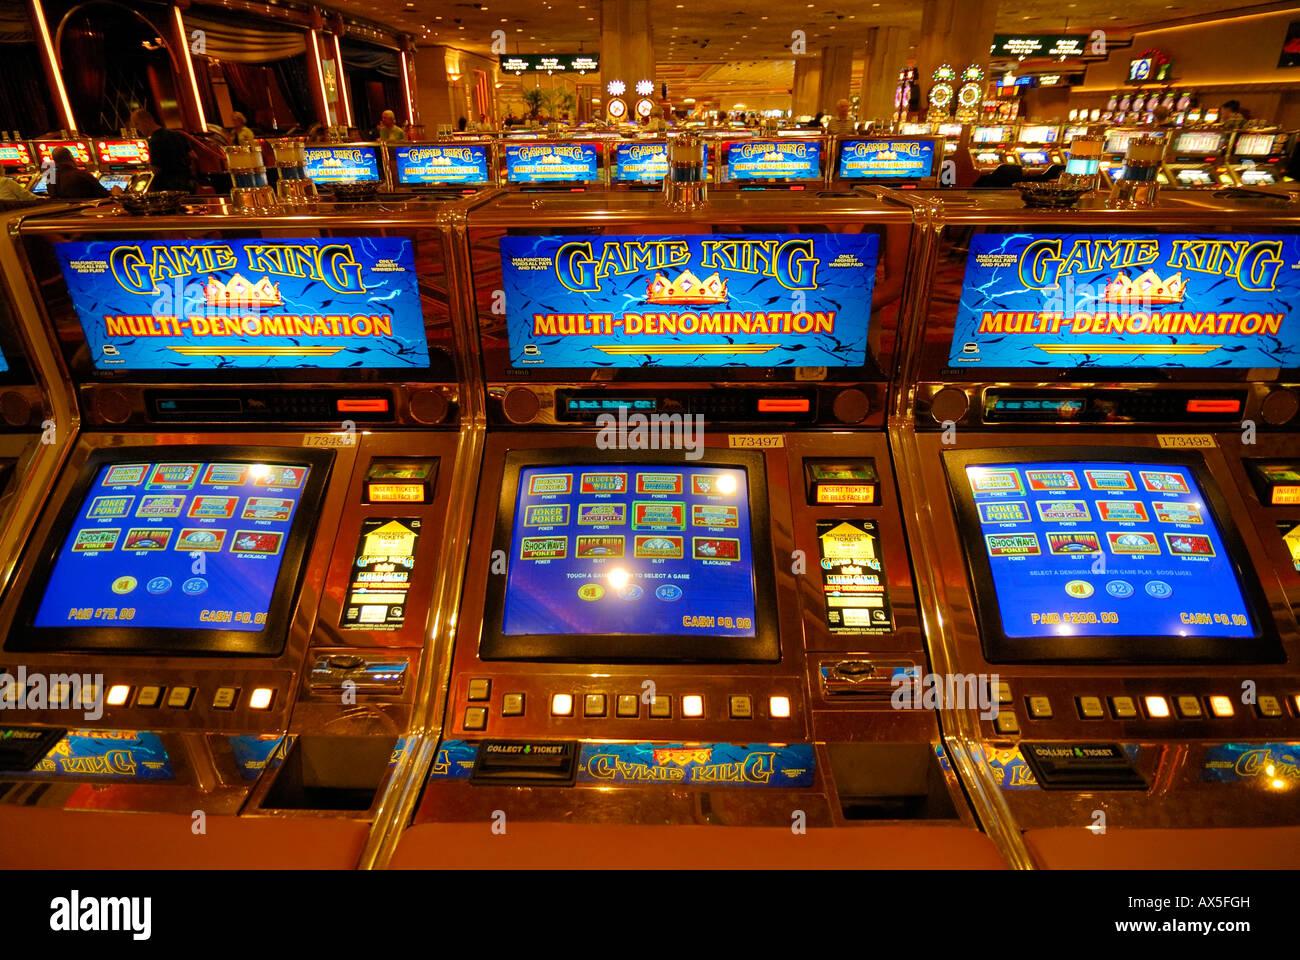 Maryland live casino online gambling